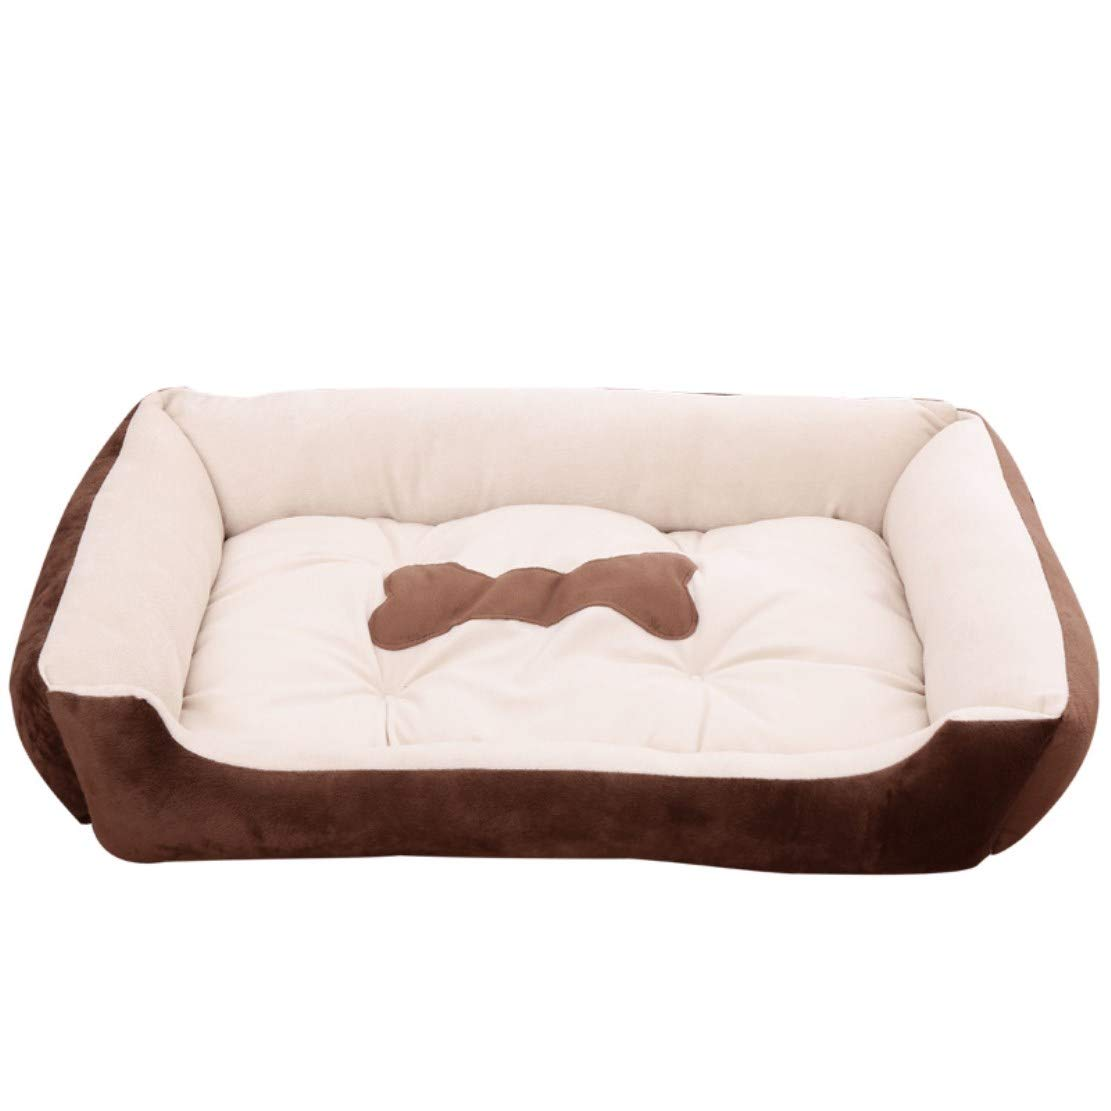 Pet Dog Bed Super Comfort Bolster Dog Bed Waterproof Memory Pet Bed with Durable Washable, Super Soft,S